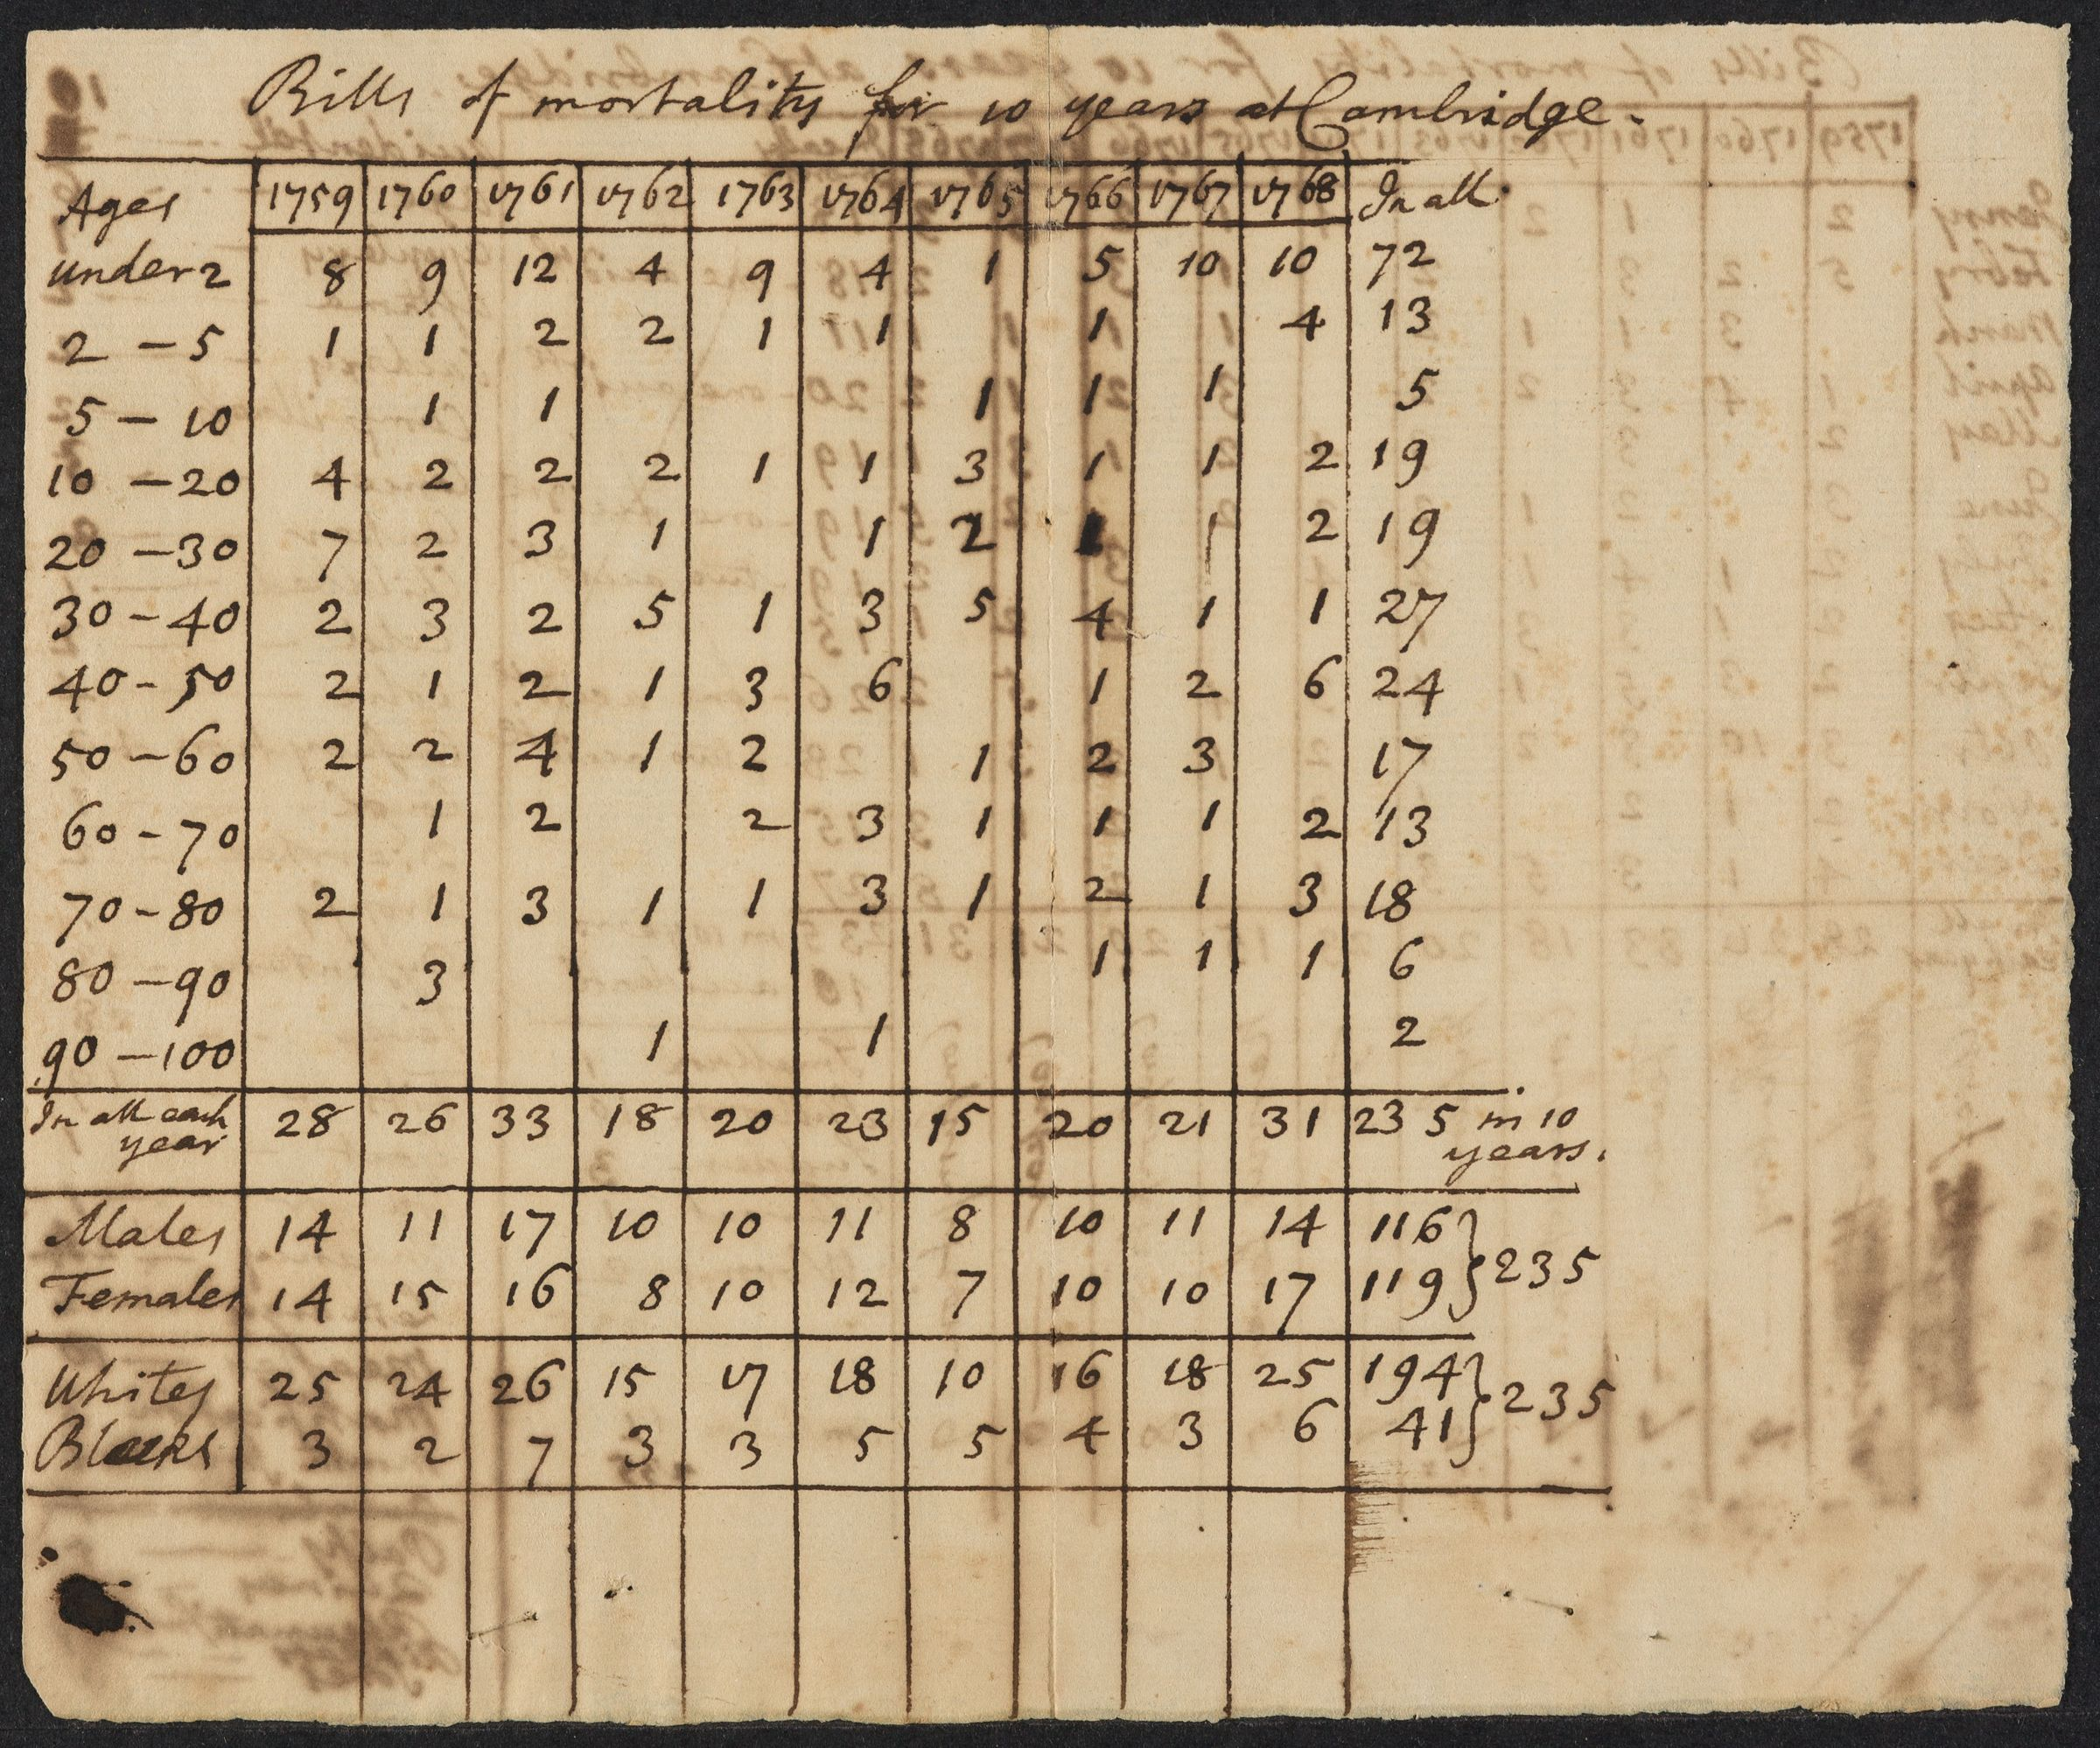 Bill of mortality for ten years at Cambridge (manuscript chart), [1768]